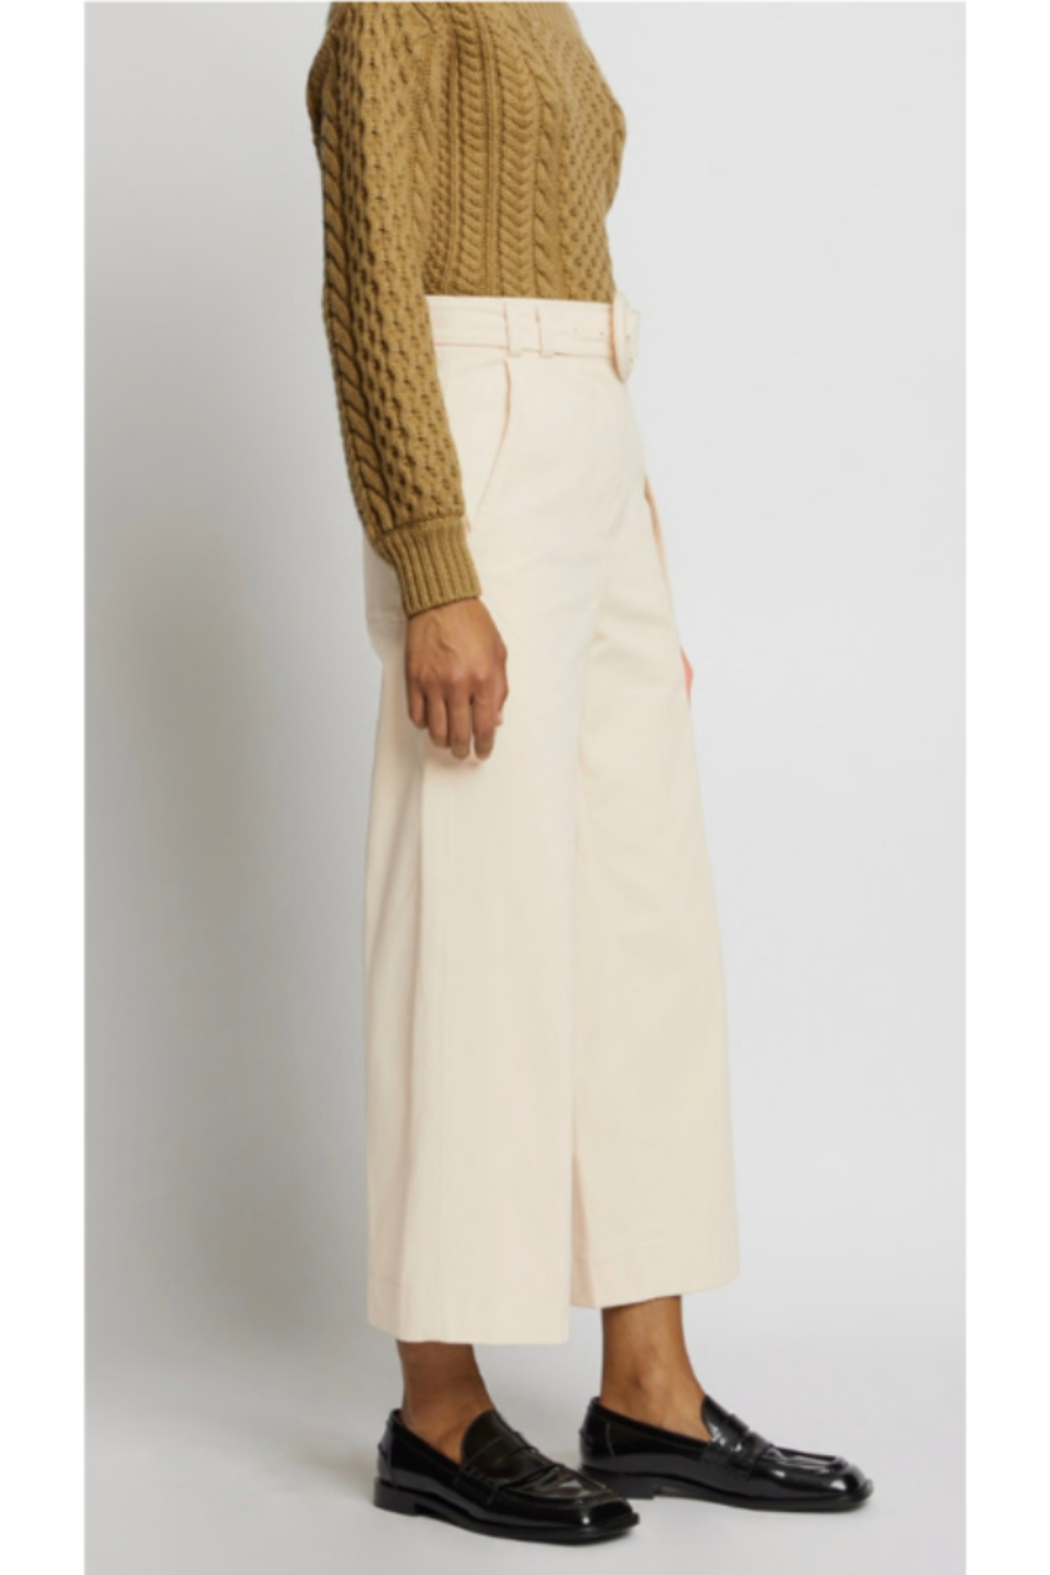 Proenza Schouler WIDE LEG PANTS - Back Cropped Image